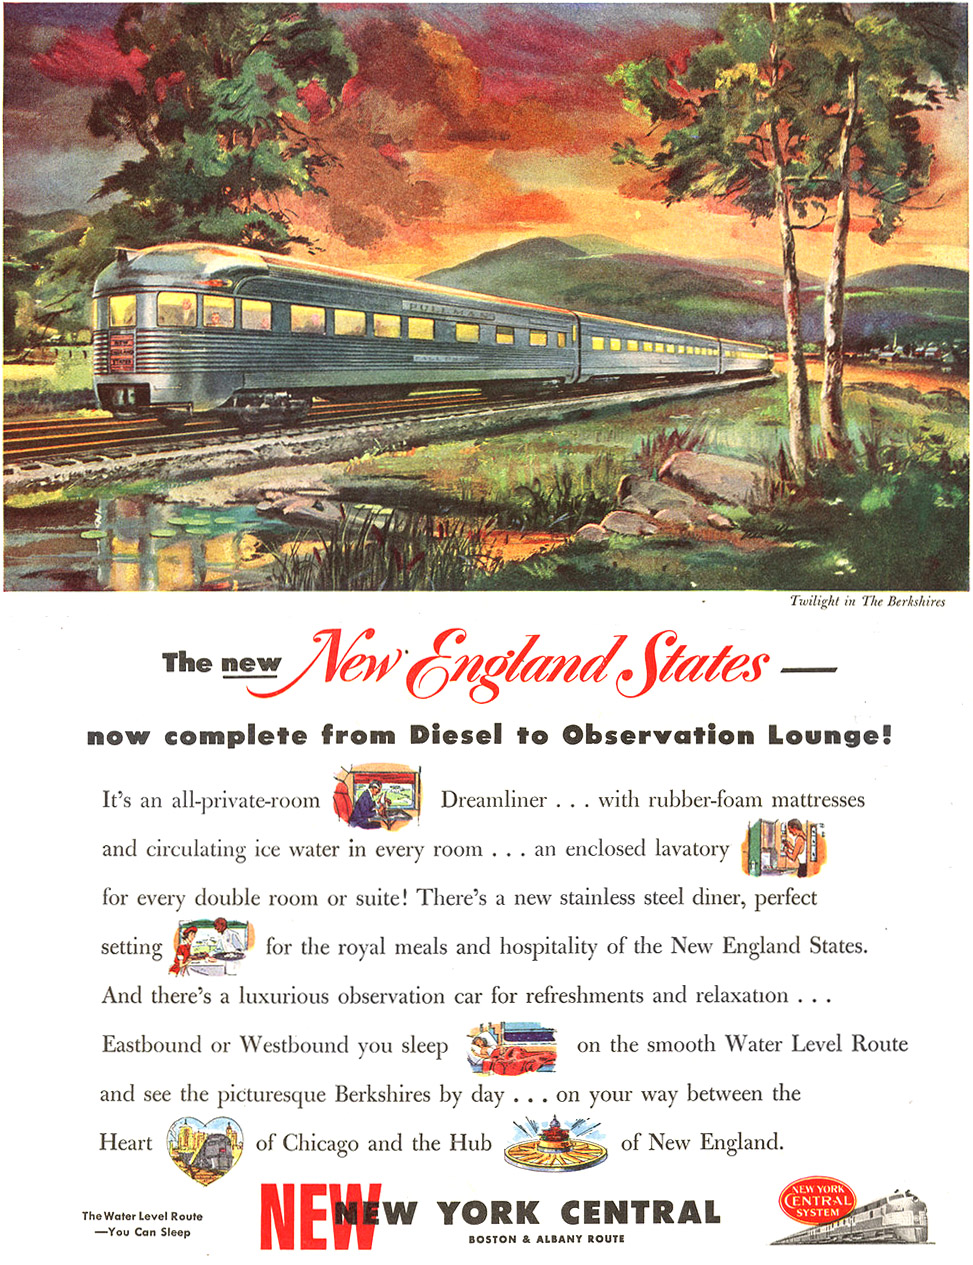 Original 1949 NYC ad for the new  New England States  equipment.